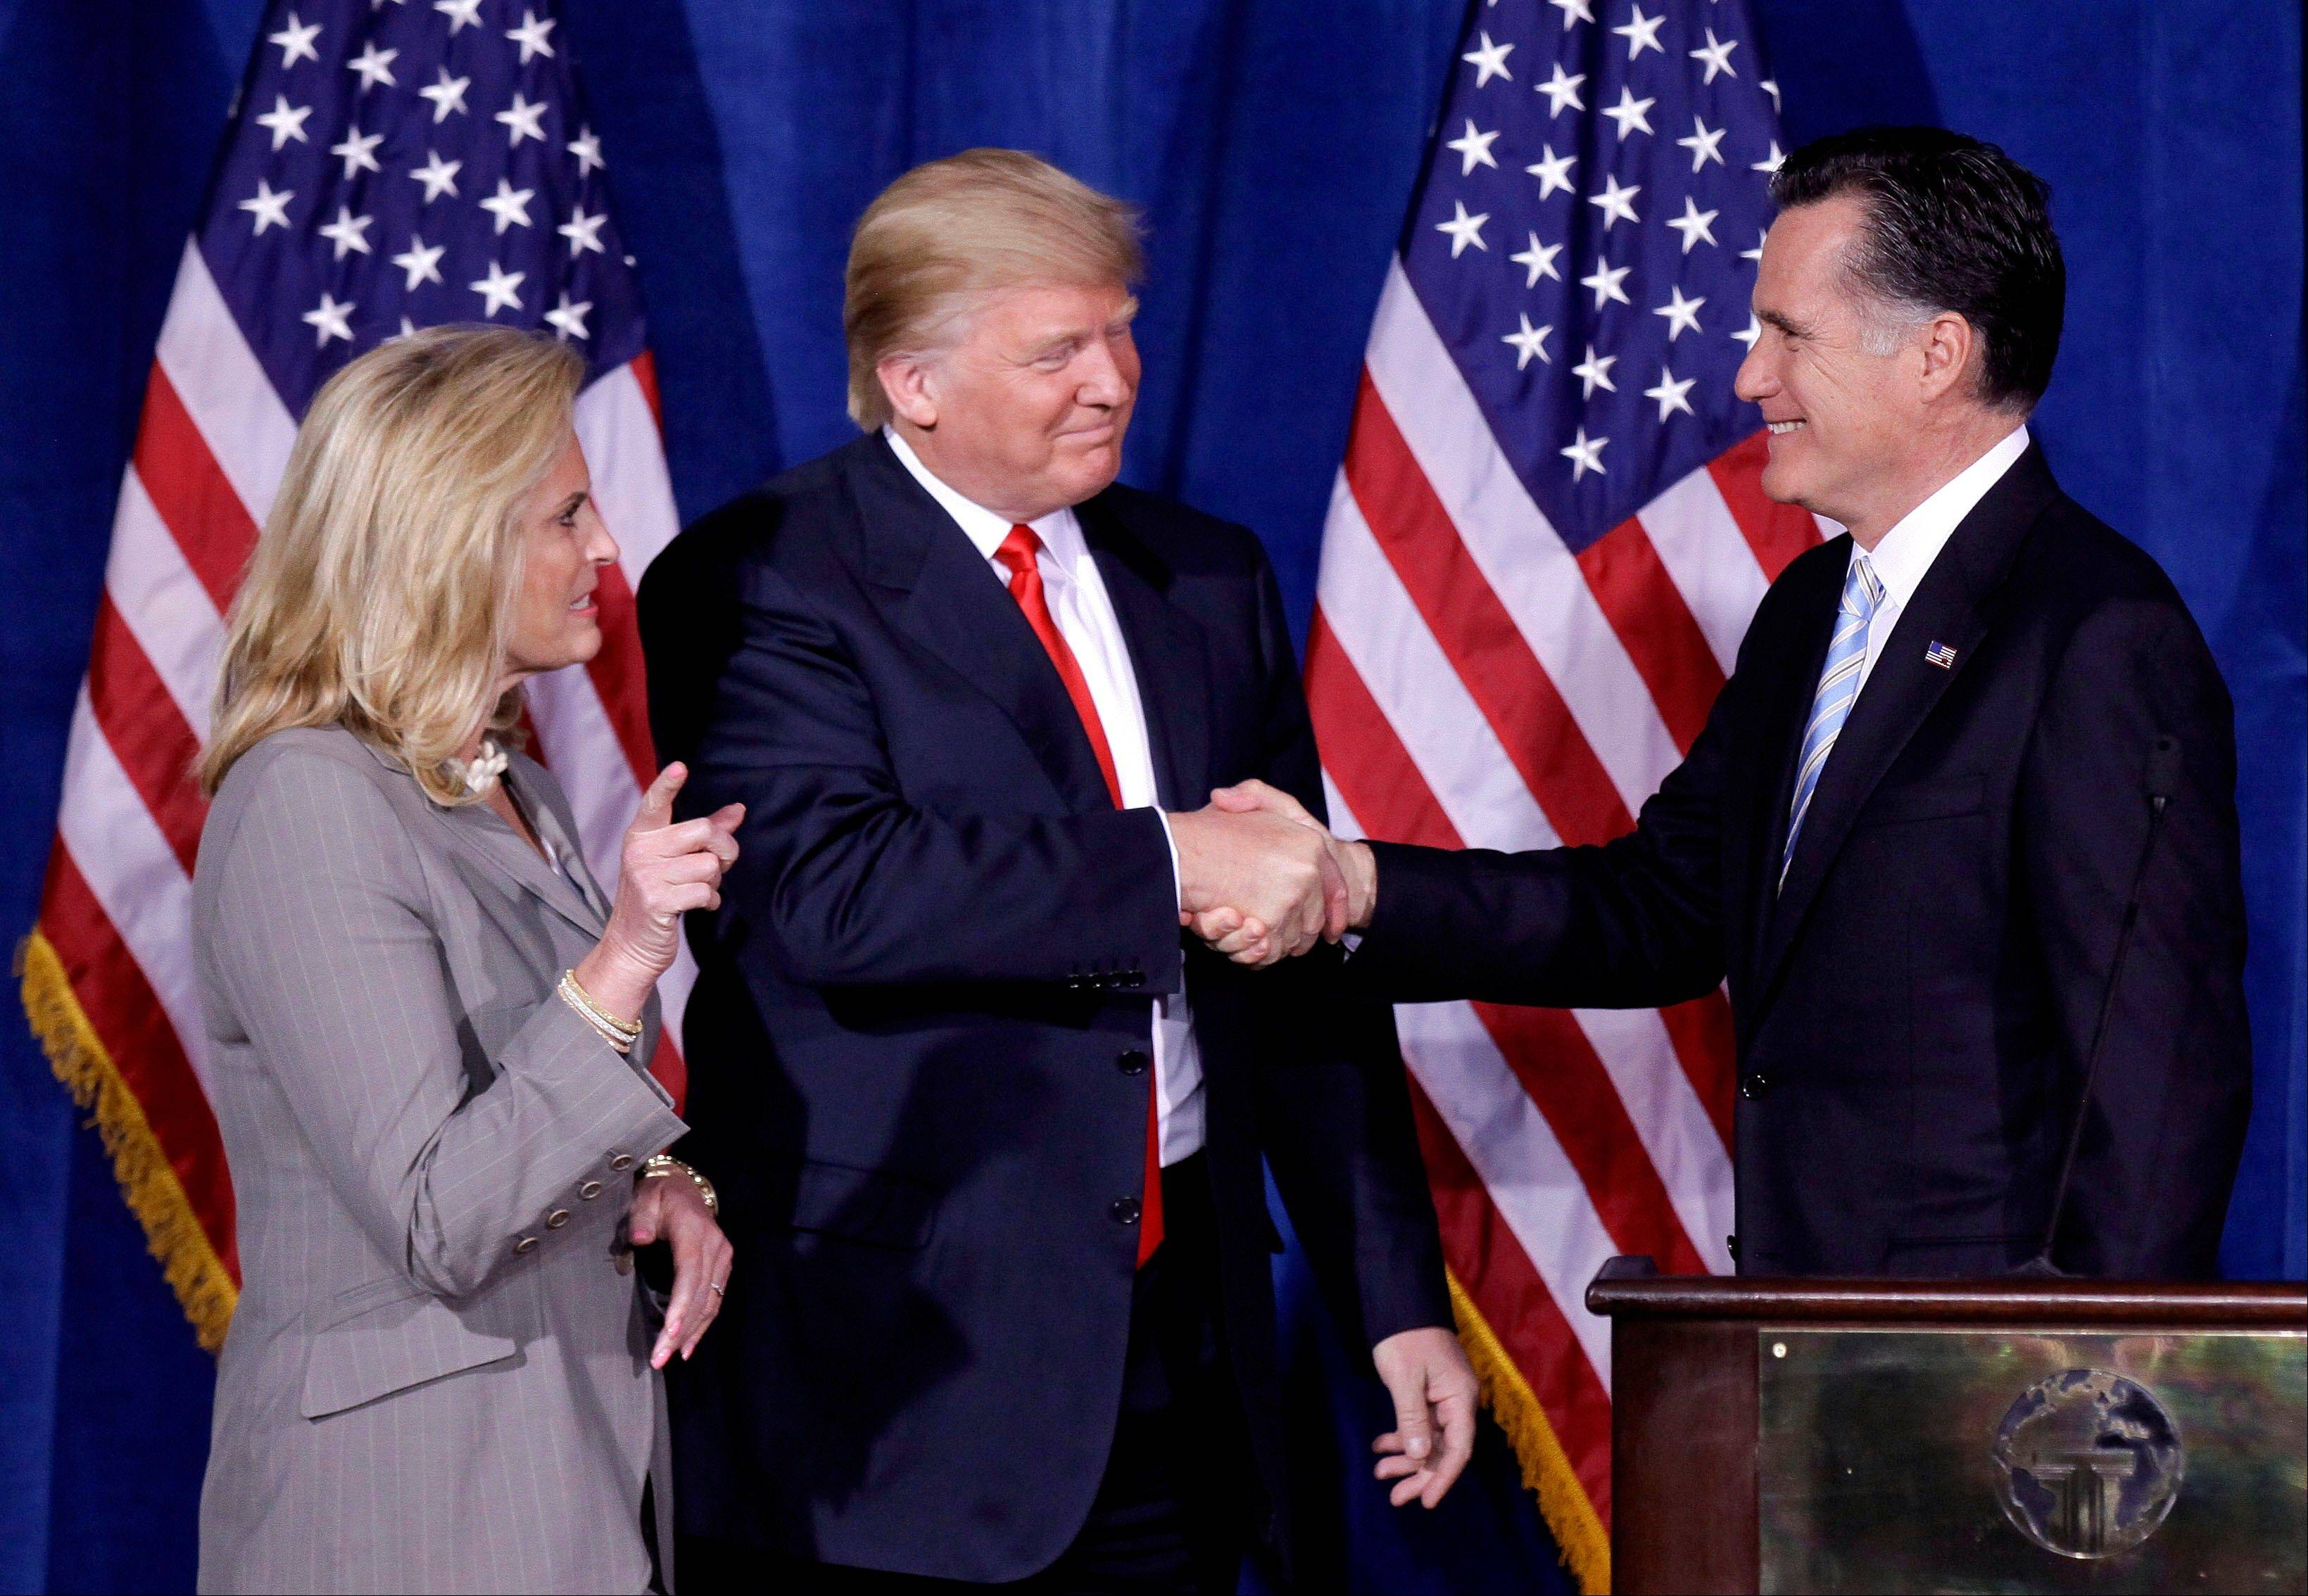 Donald Trump greets Republican presidential candidate Mitt Romney on Feb. 2 after announcing his endorsement of Romney during a news conference in Las Vegas. President Barack Obama and Romney have visited the state, competing strenuously for Nevada's six electoral votes in what has become one of the most intense swing-state contests. Romney's wife, Ann, is at left.